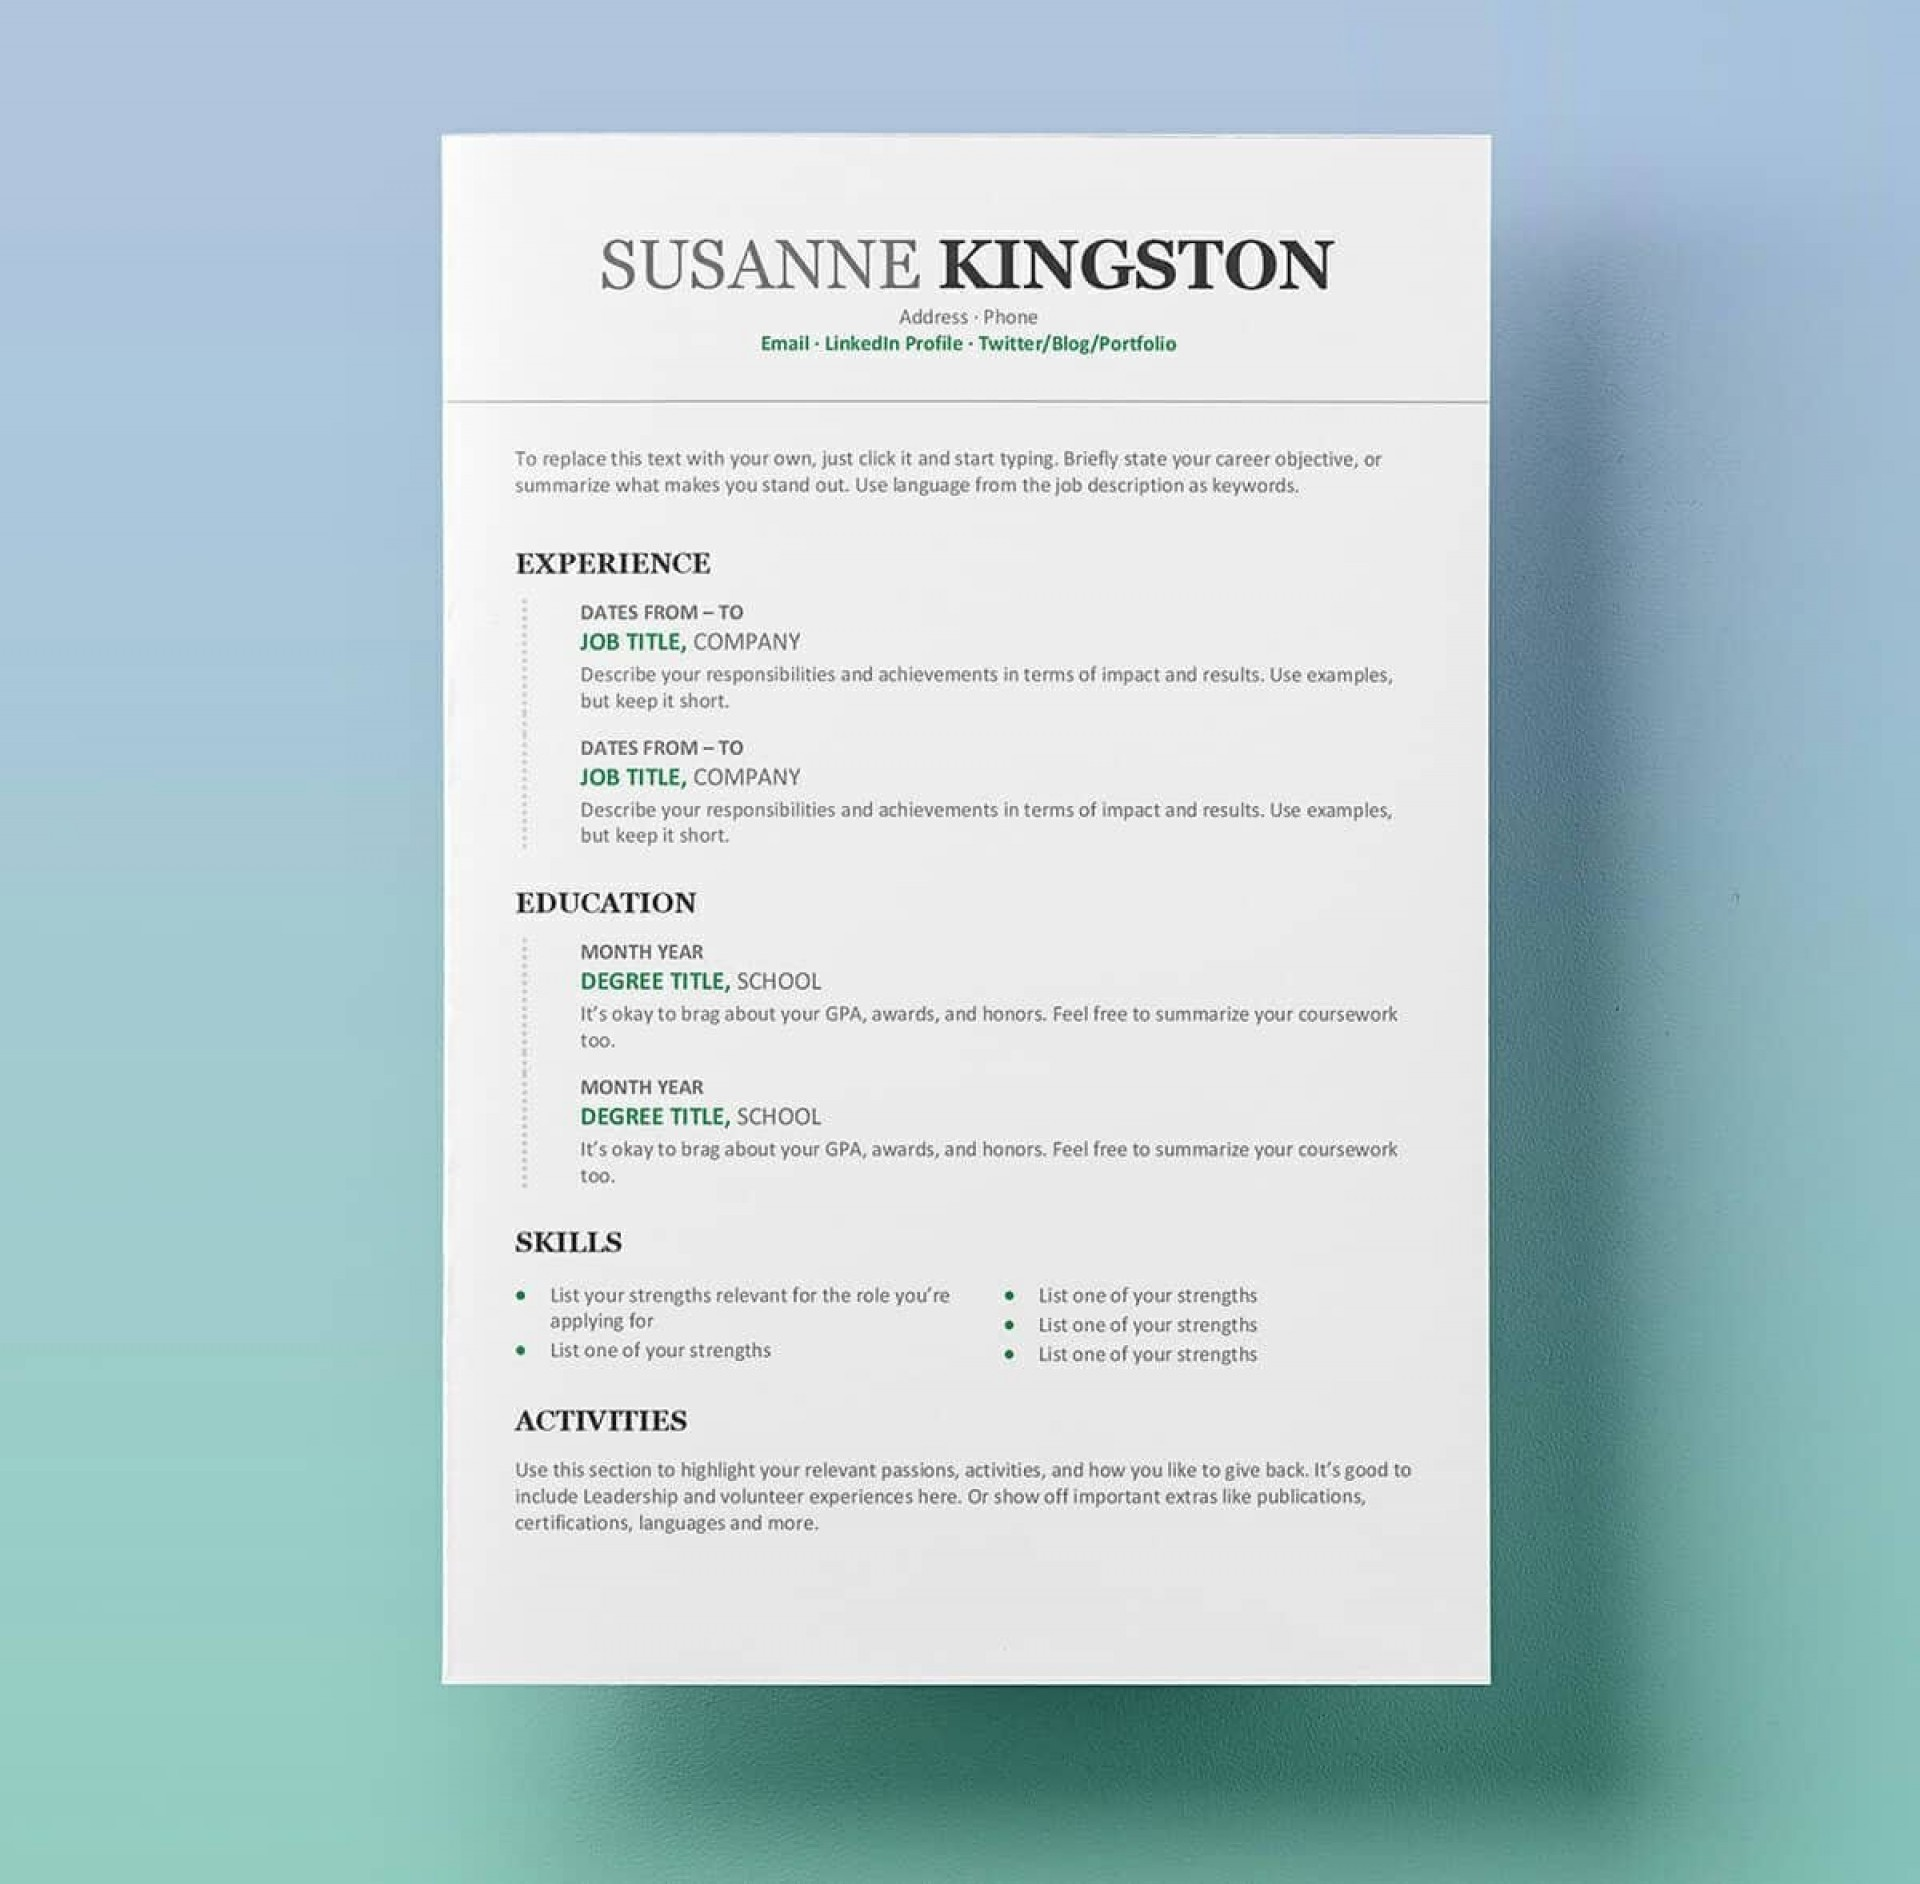 012 Frightening Download Resume Template Free Word Concept  Attractive Microsoft Simple For Creative1920